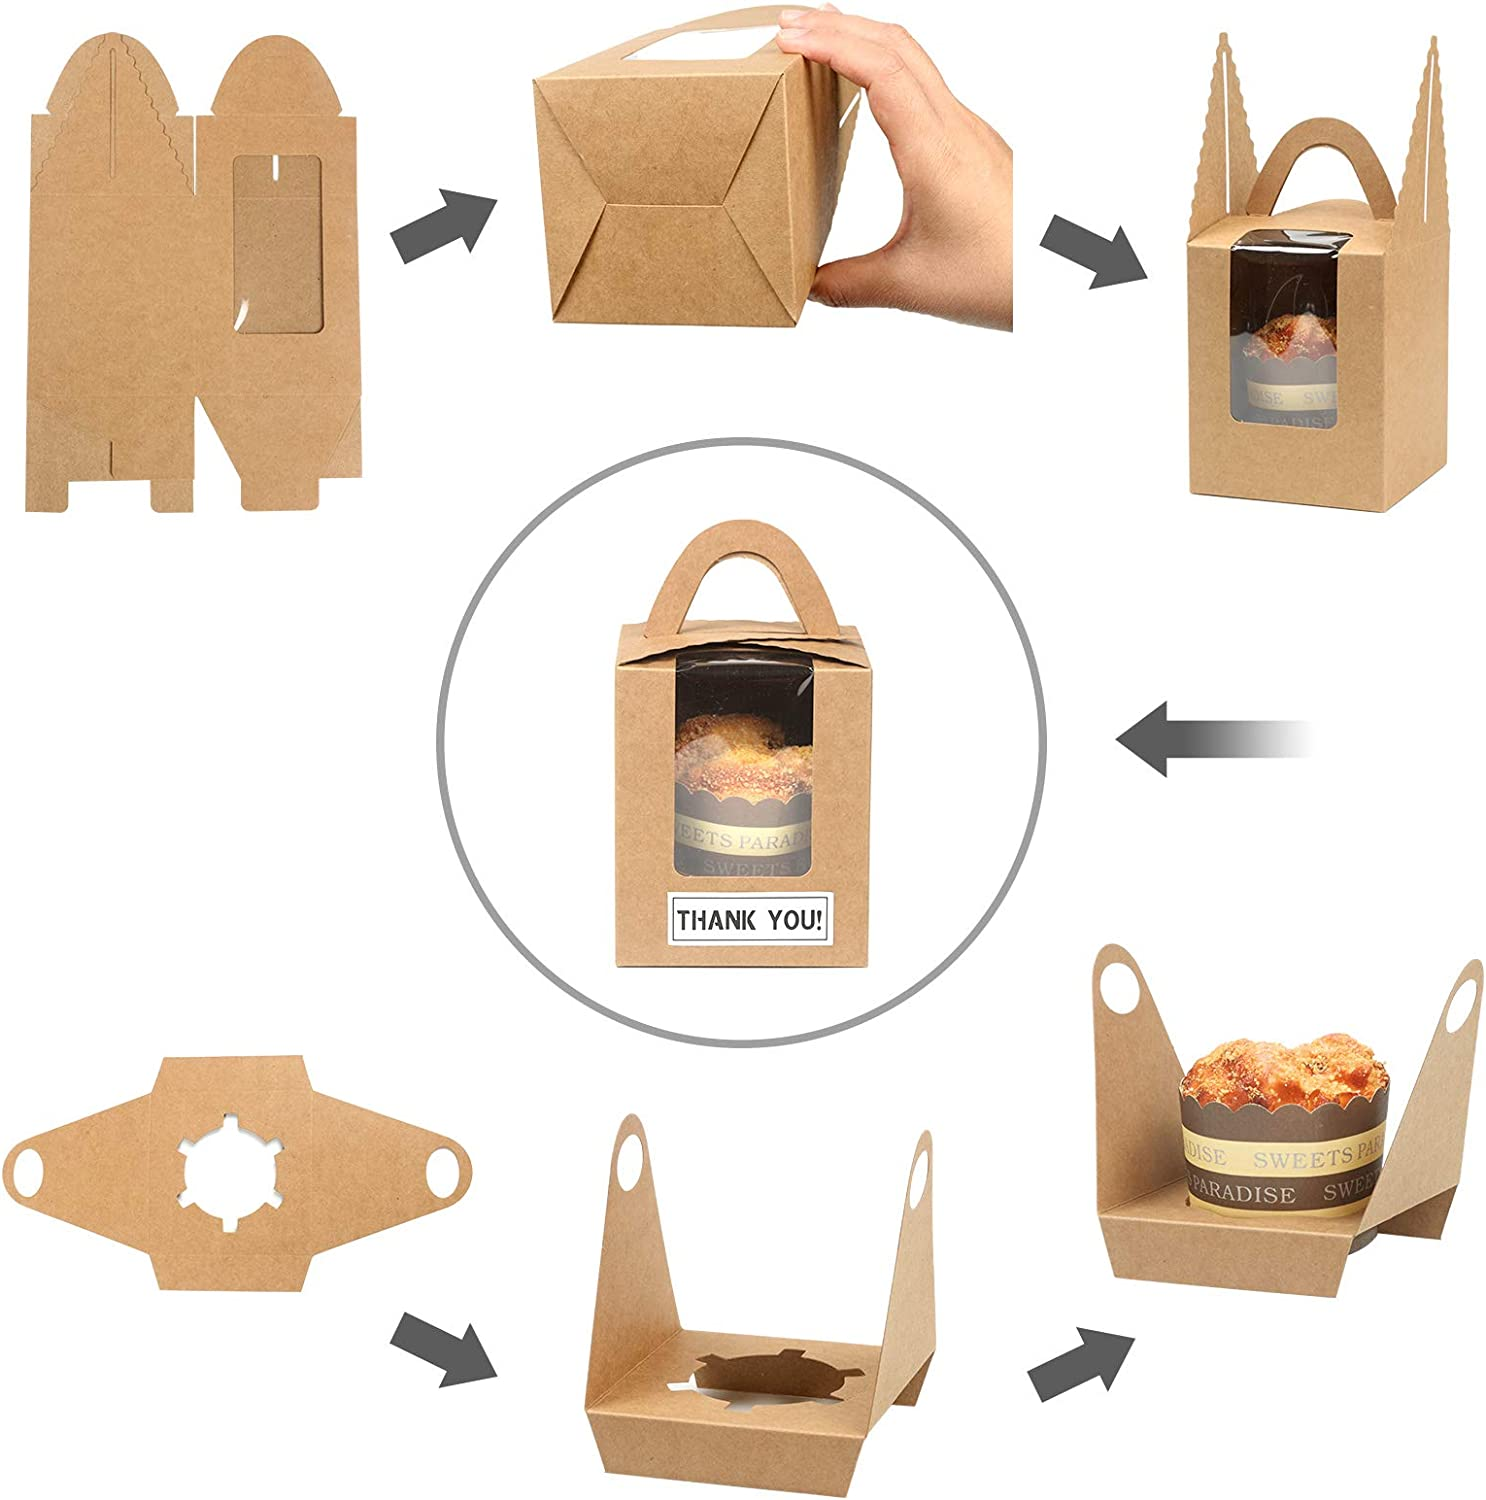 Kraft, 60 Kraft Cupcake Boxes KPOSIYA 60 Pack Single Cupcake Carriers Holder with Window Insert Handle and Thank You Sticker Individual Cupcake Containers Boxes for Bakery Wrapping Packaging